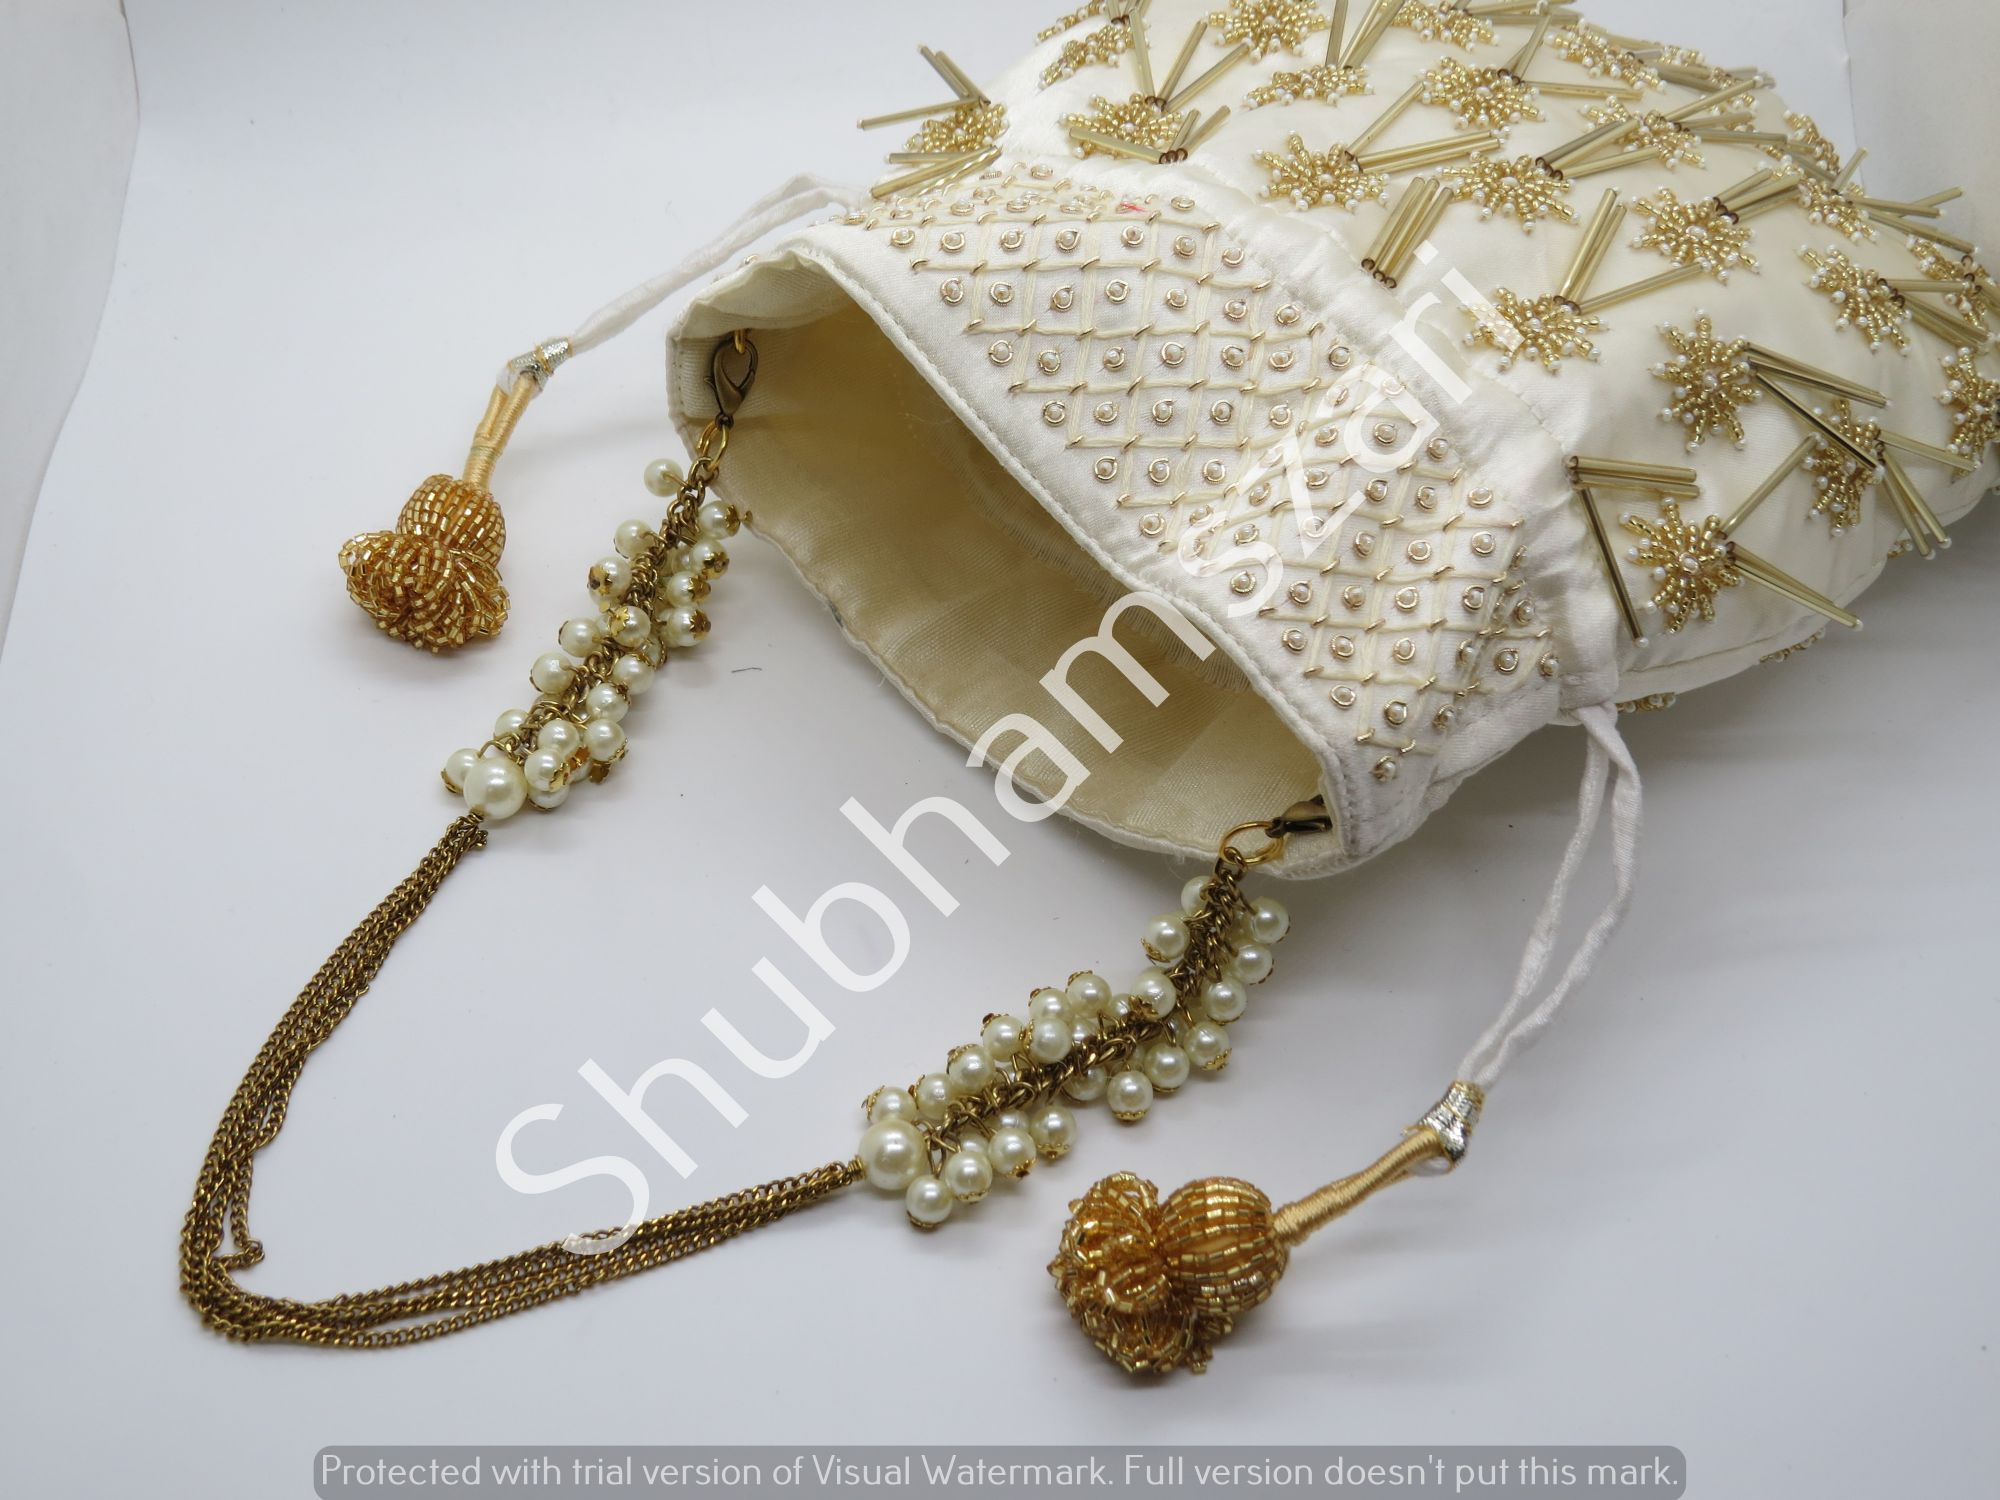 Ivory Silk, Katdana Beads, potli bag, tassels, handcrafted, handmade, designer luxury handbag, wedding potli, party bag,